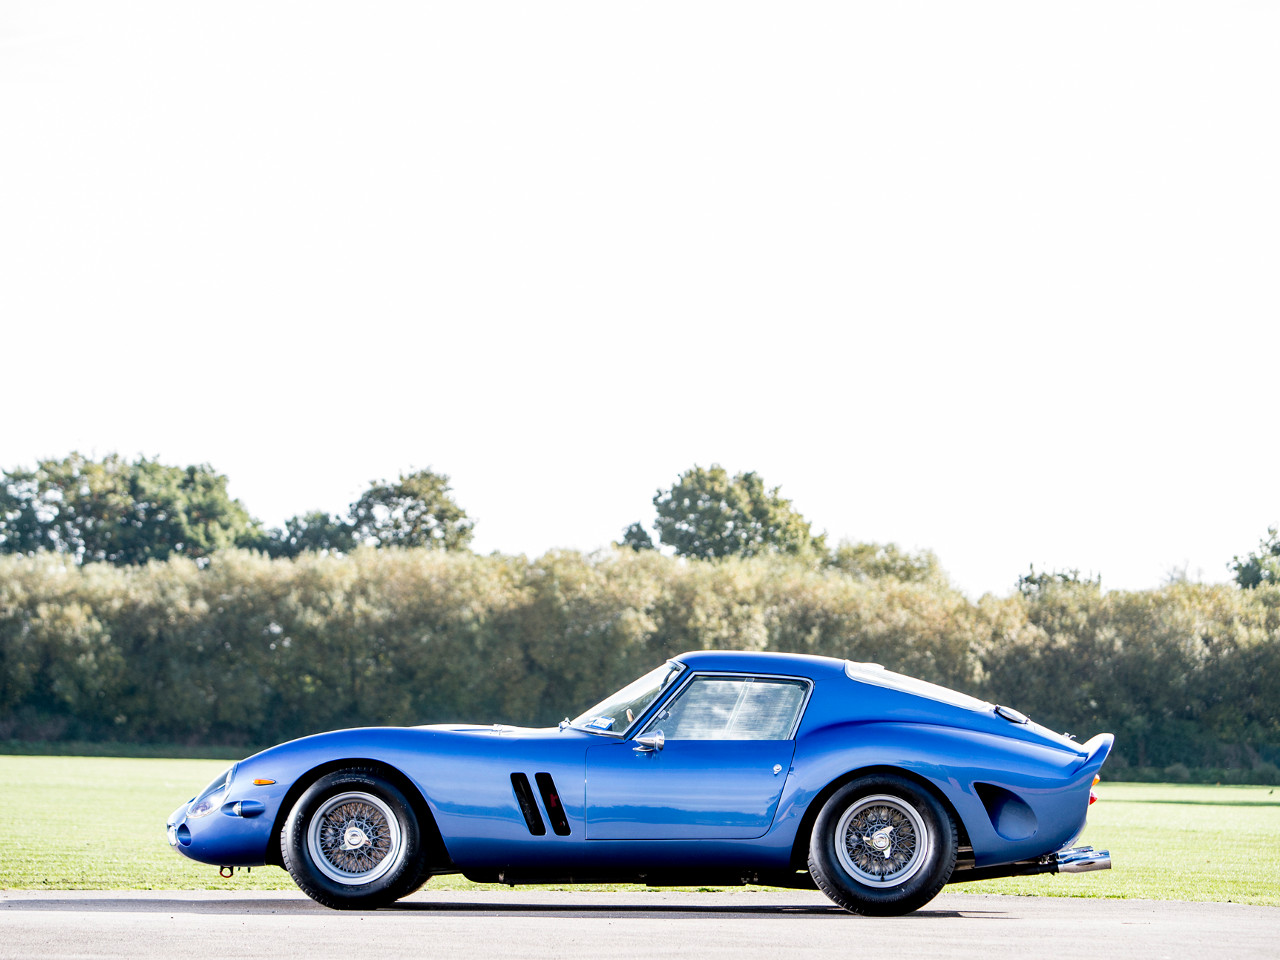 1962 ferrari 250 gto s n 3387gt for sale at 56 400 000 gtspirit. Cars Review. Best American Auto & Cars Review